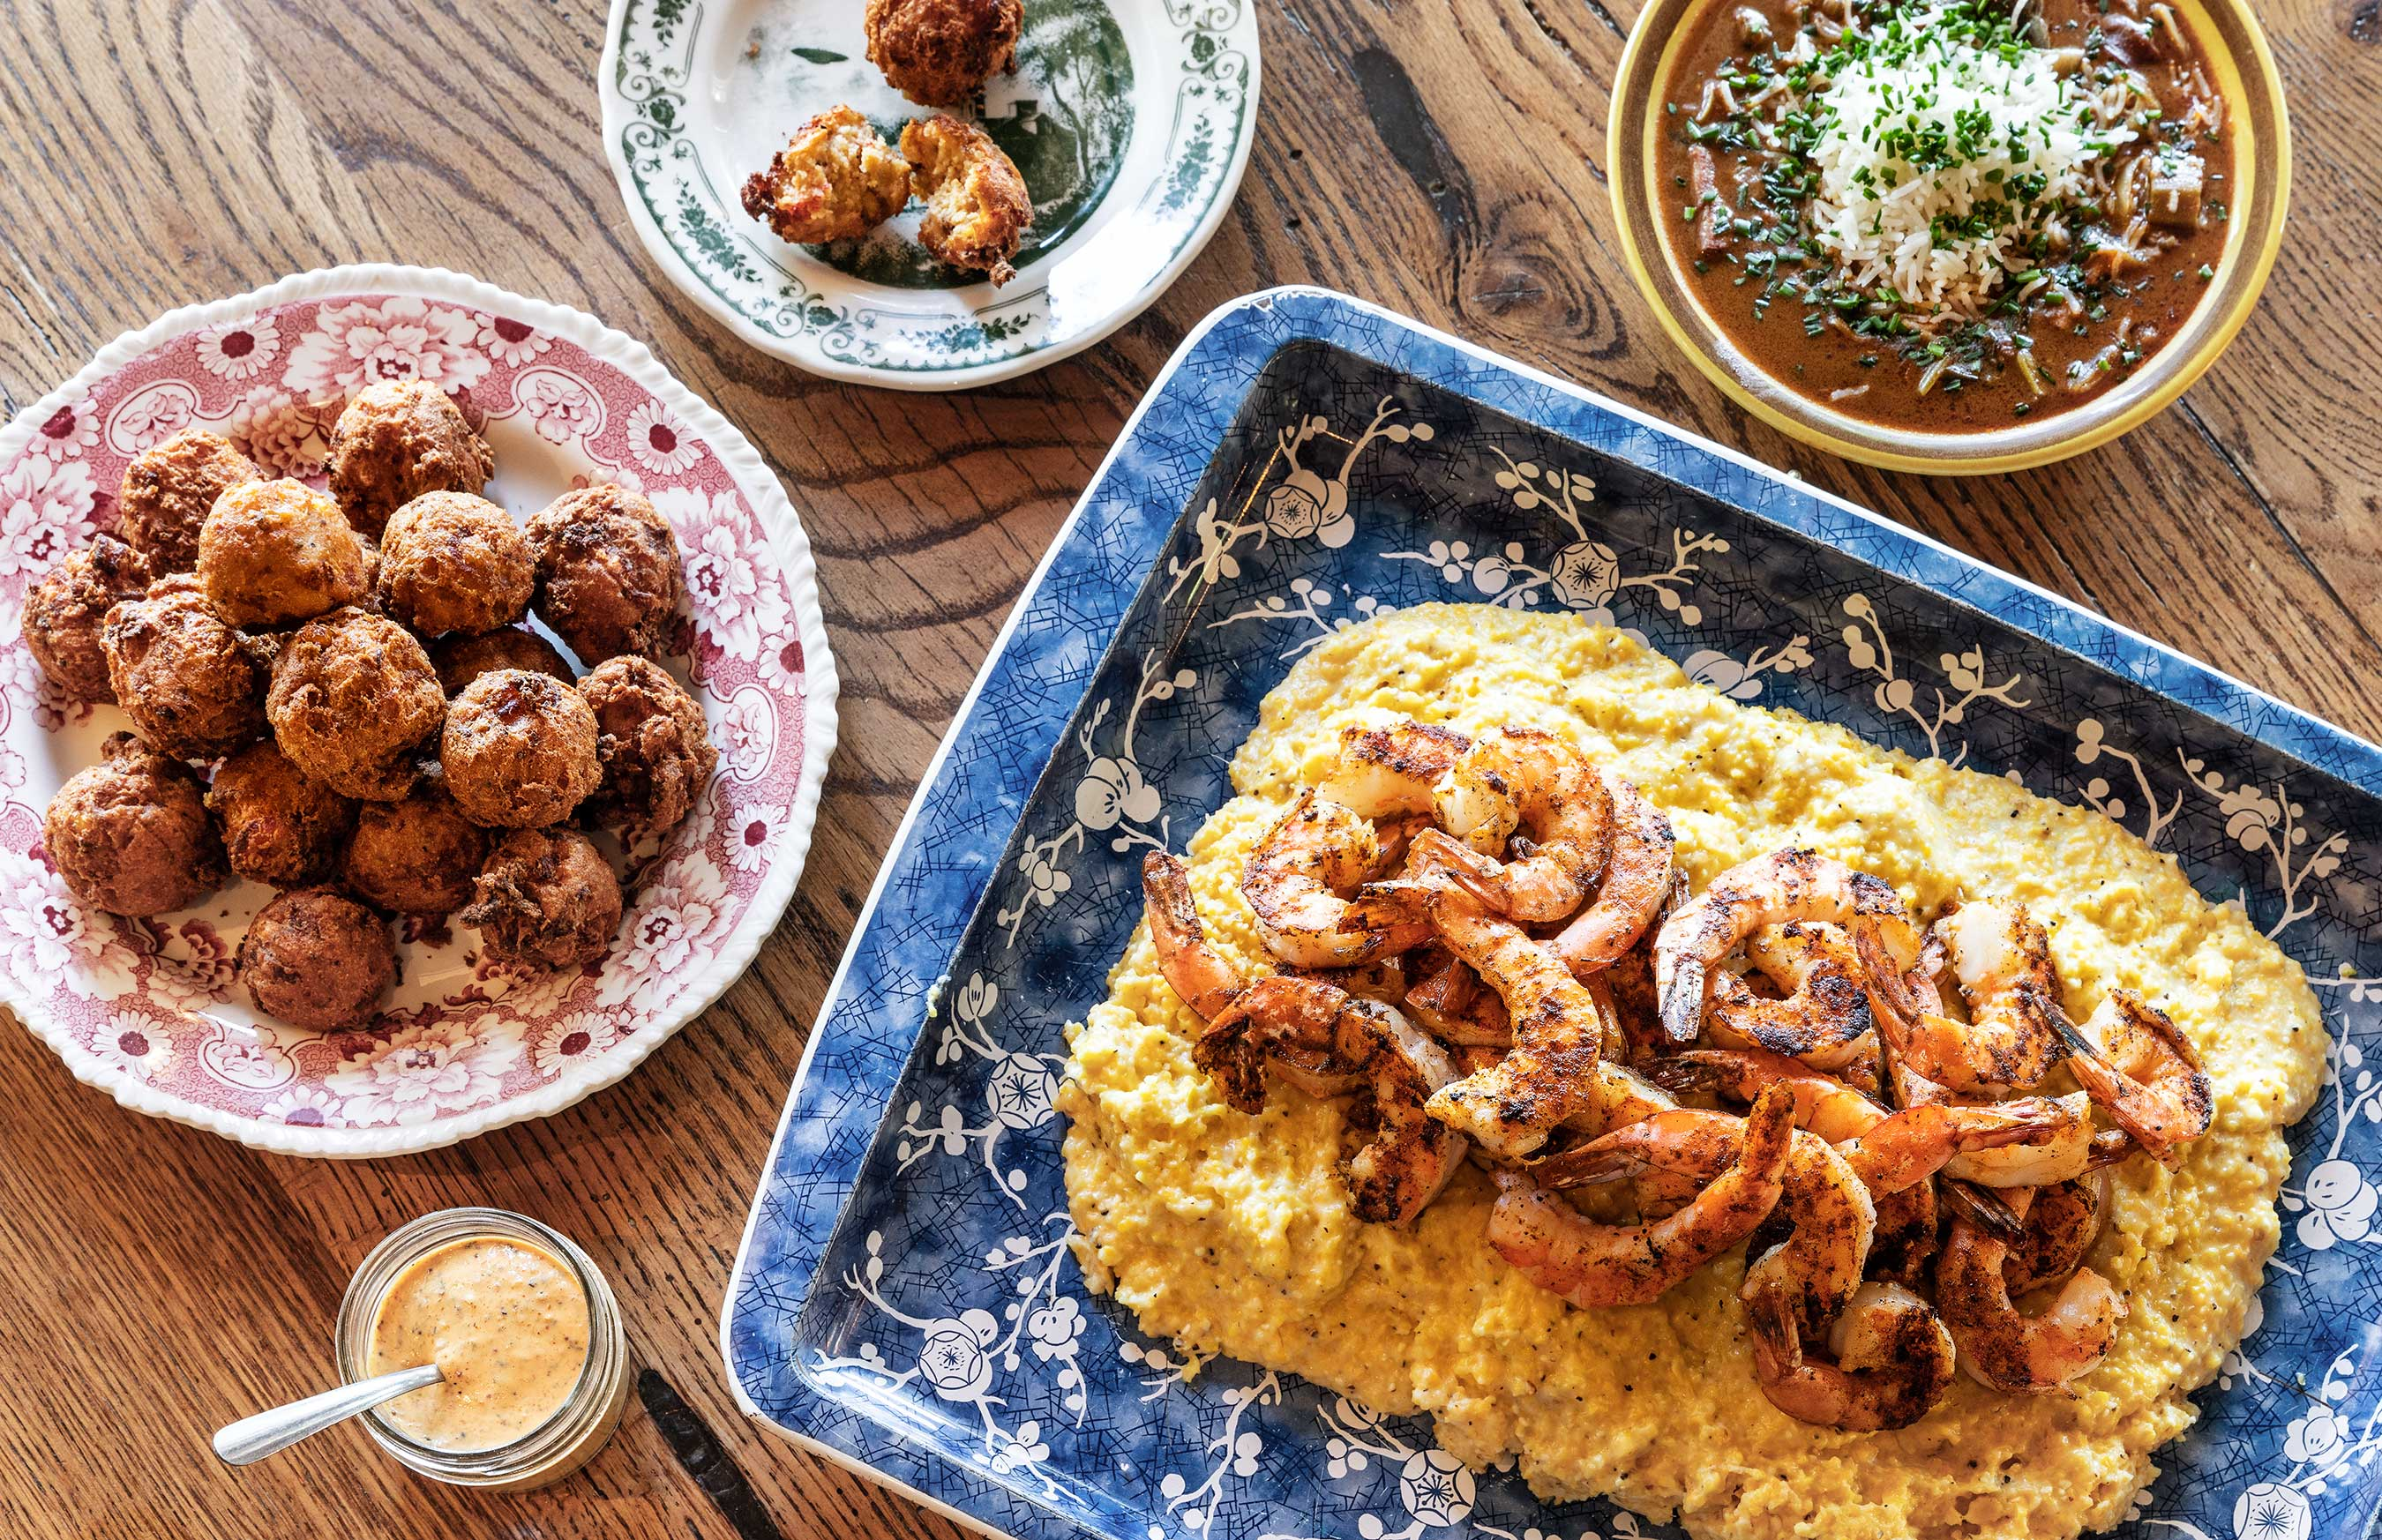 Blue platter of shrimp on rice with hush puppies + beans on a wood surface